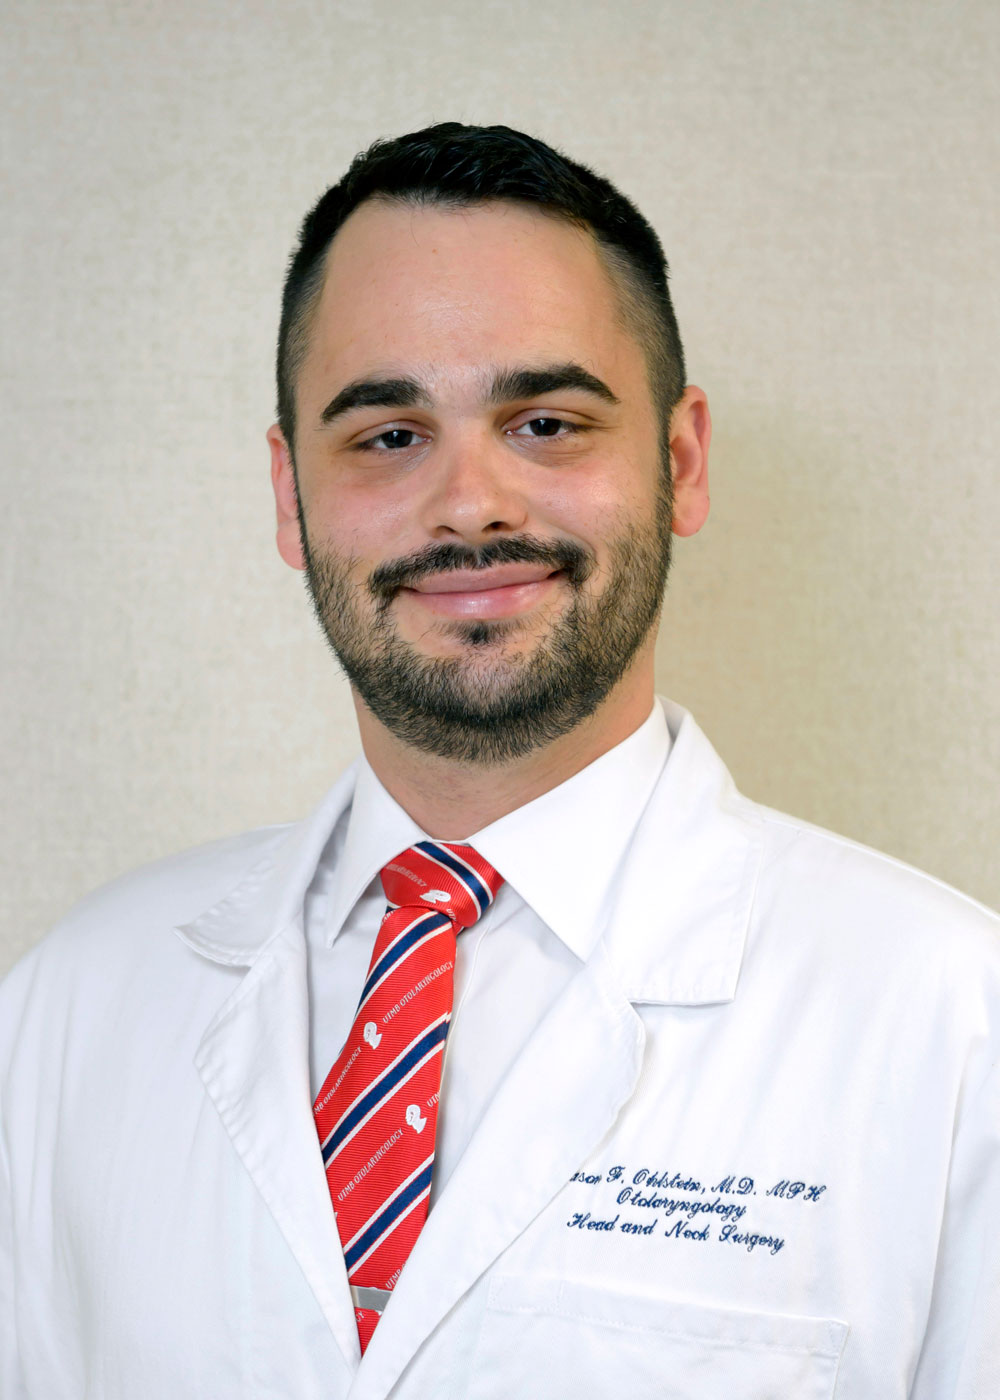 Jason Ohlstein, MD